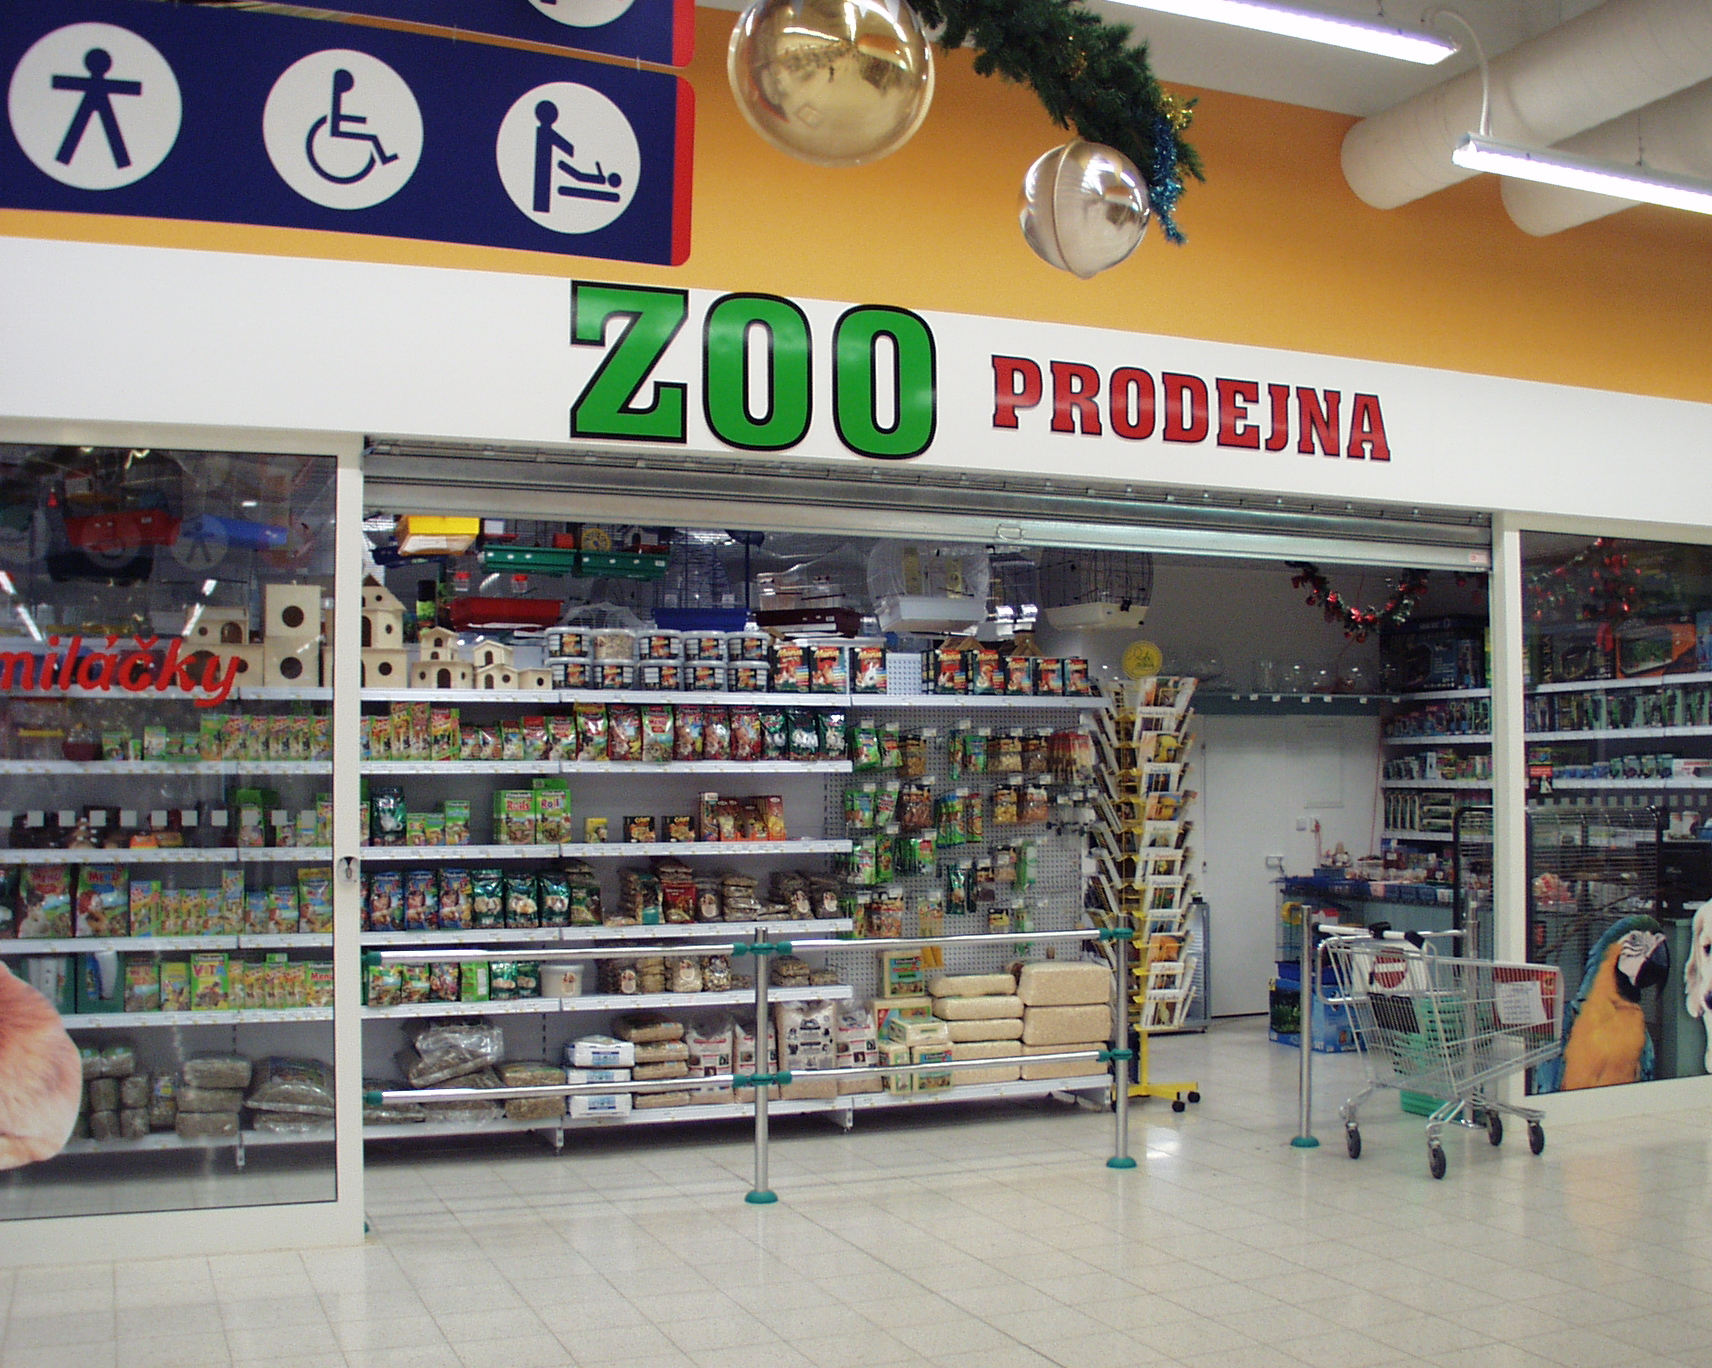 Tesco-Cesky-Tesin_4e660ac619125.JPG